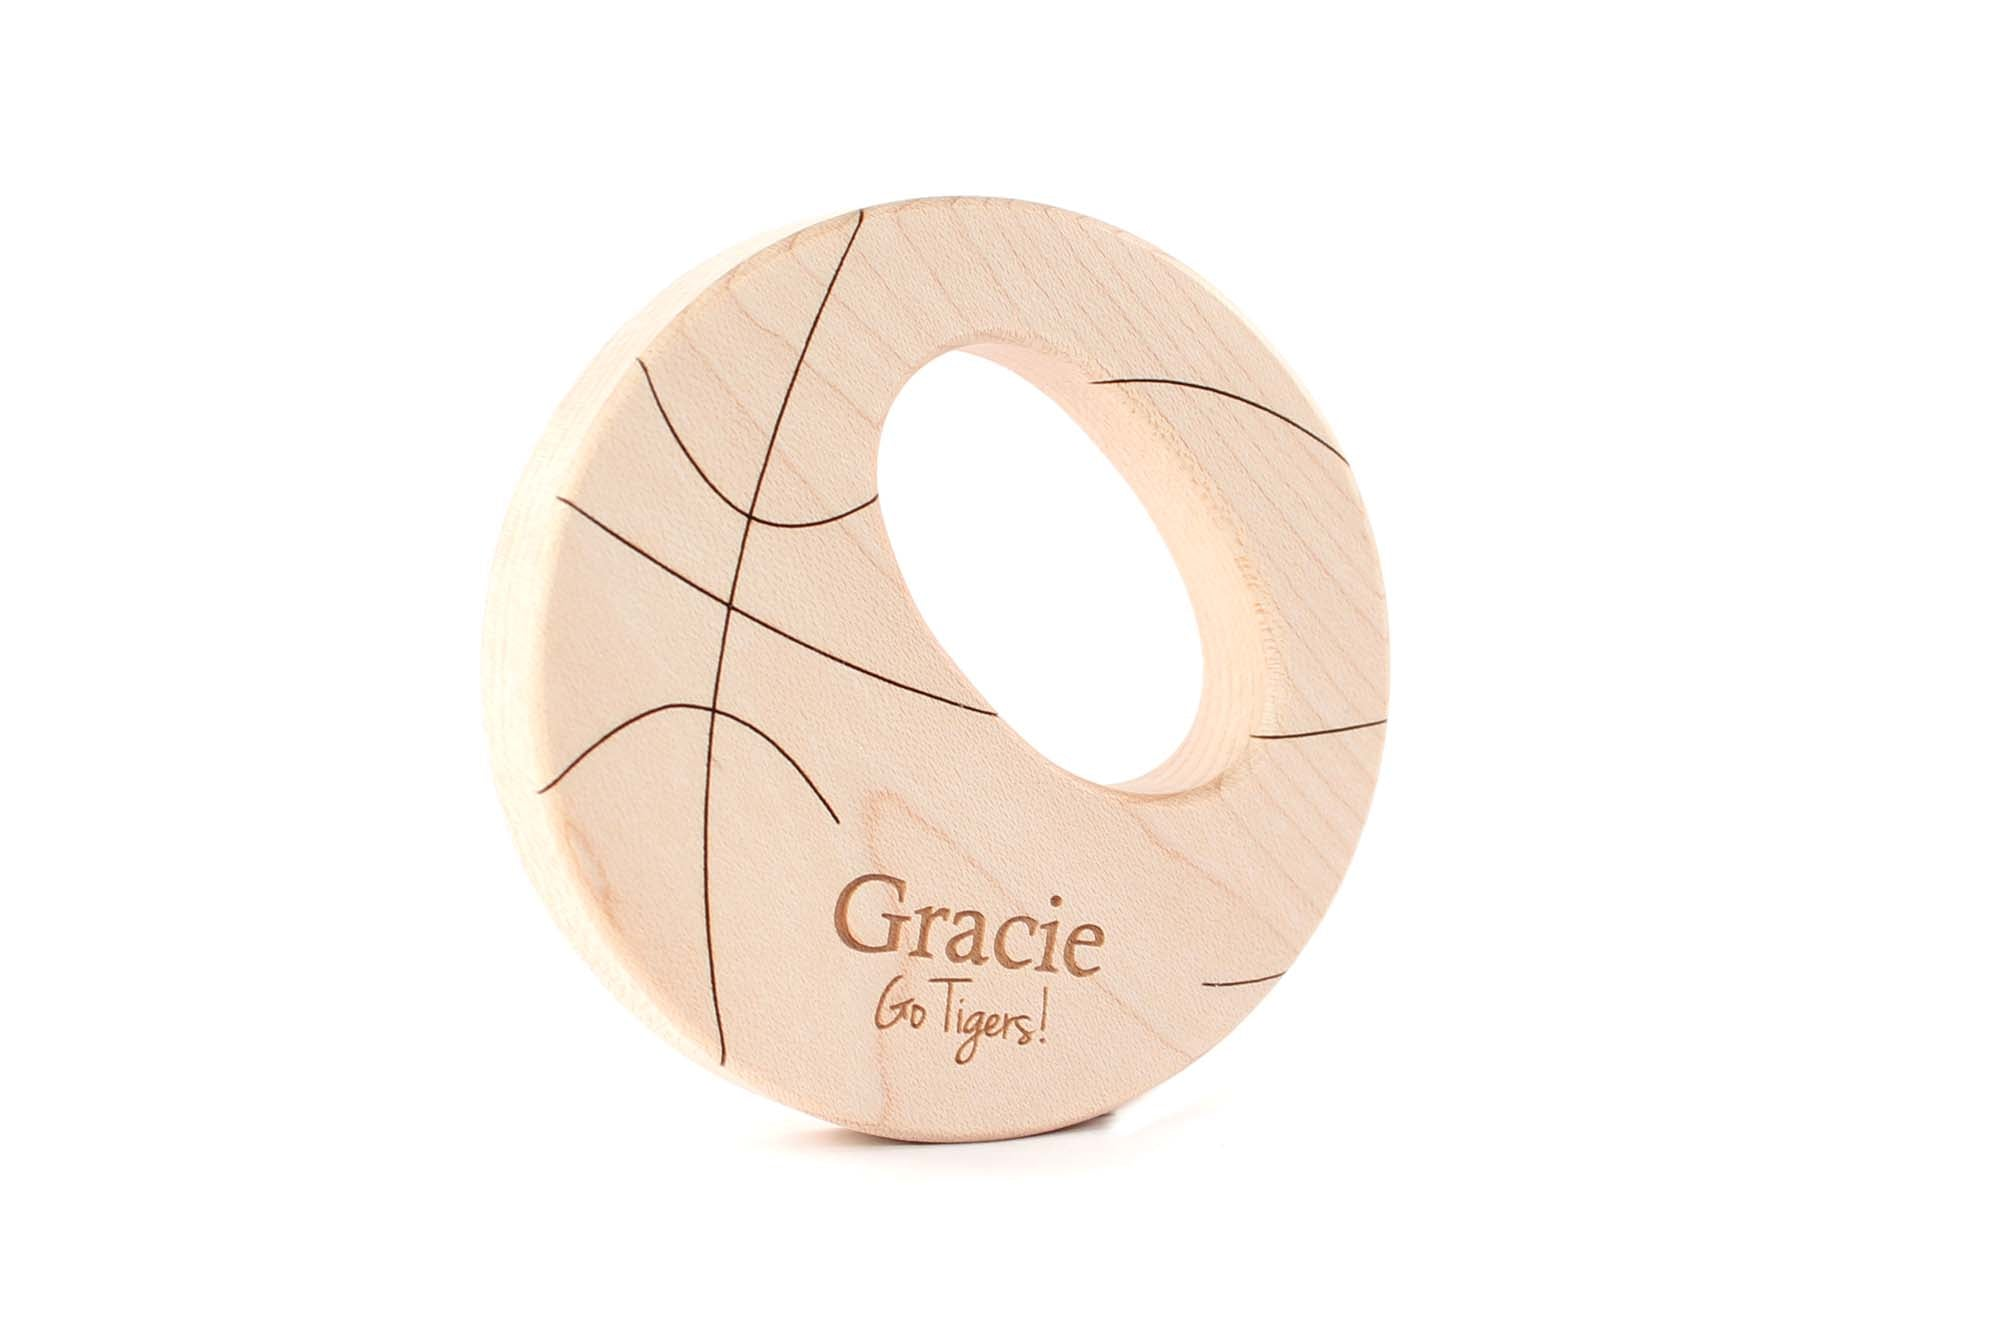 personalized basketball wooden baby teether toy